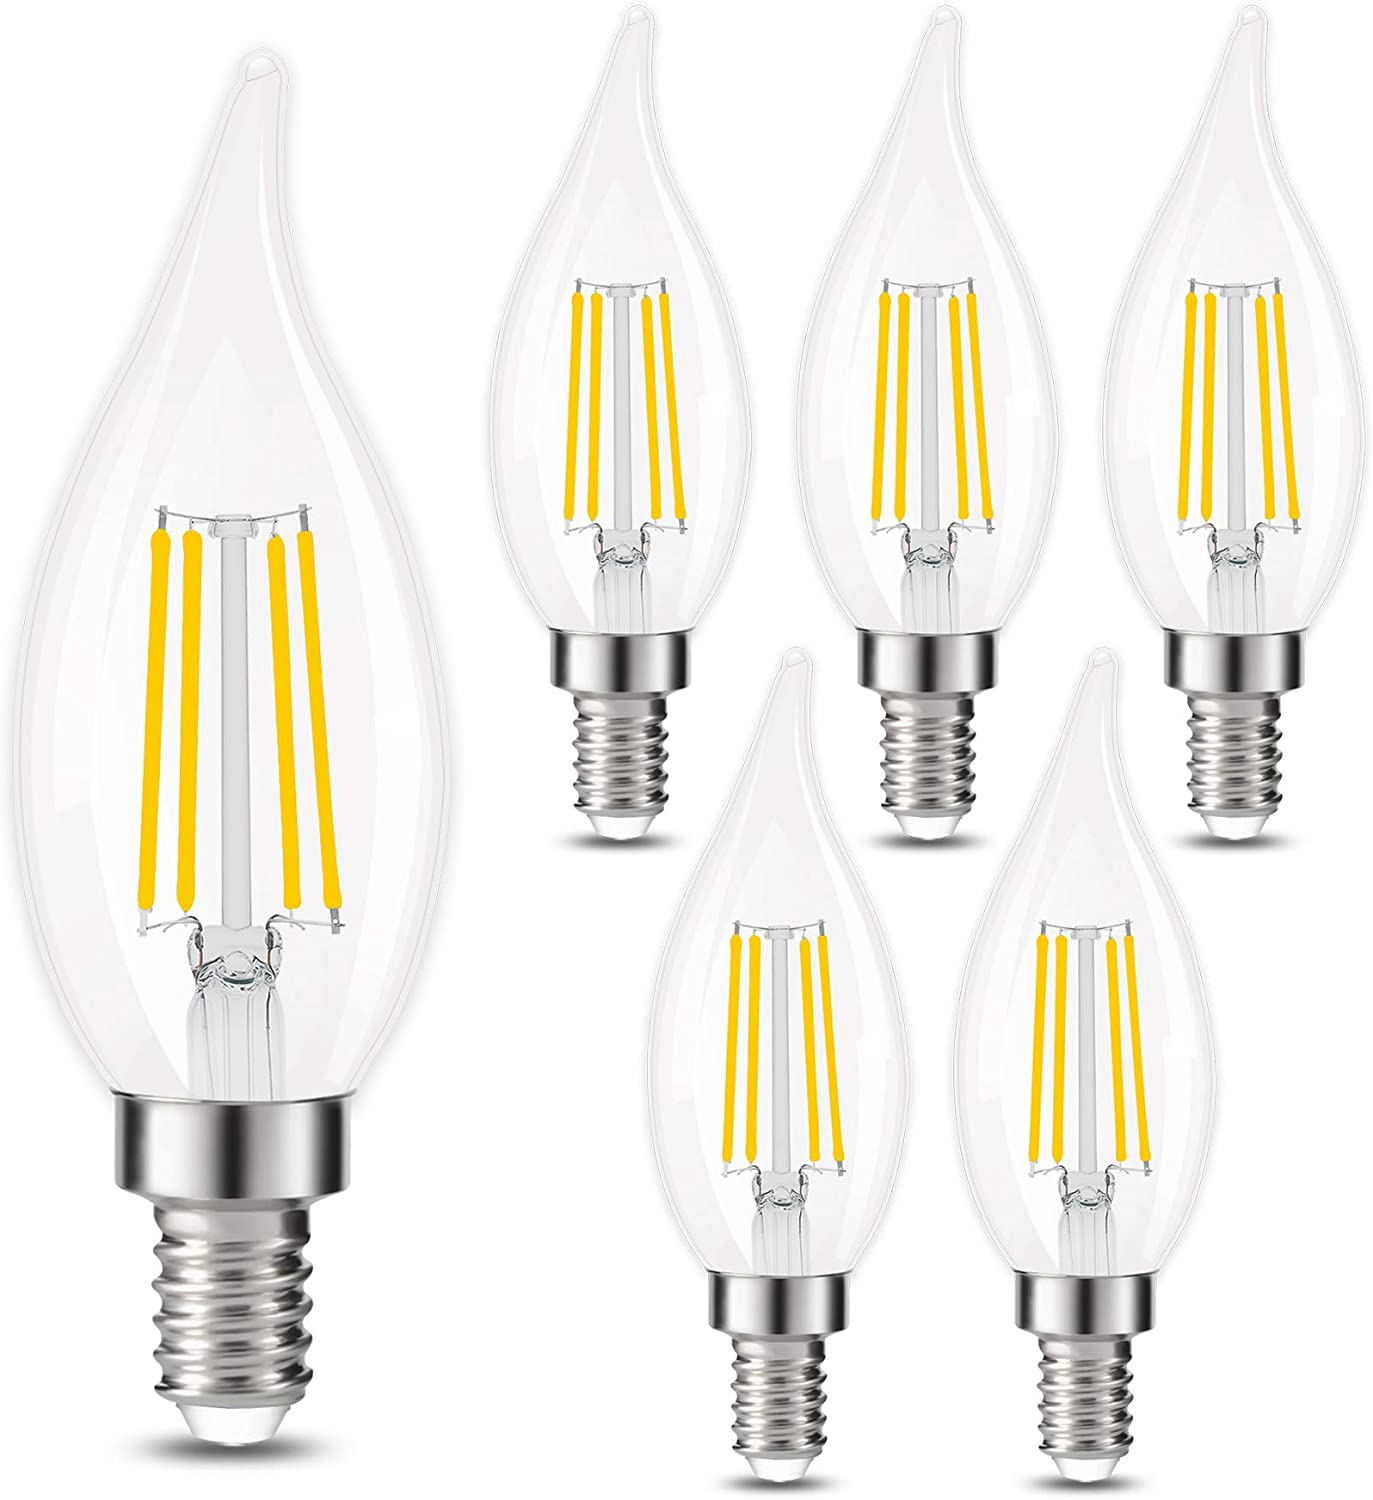 E12 Led Candelabra Bulb Golspark 4w Dimmable Chandelier Light Bulbs 40w Equivalent C35 Vintage Filament Candle Bulb Flame Tip 360 Degrees Beam Angle 400lm Pack Of 6 C35 4000k Daylight